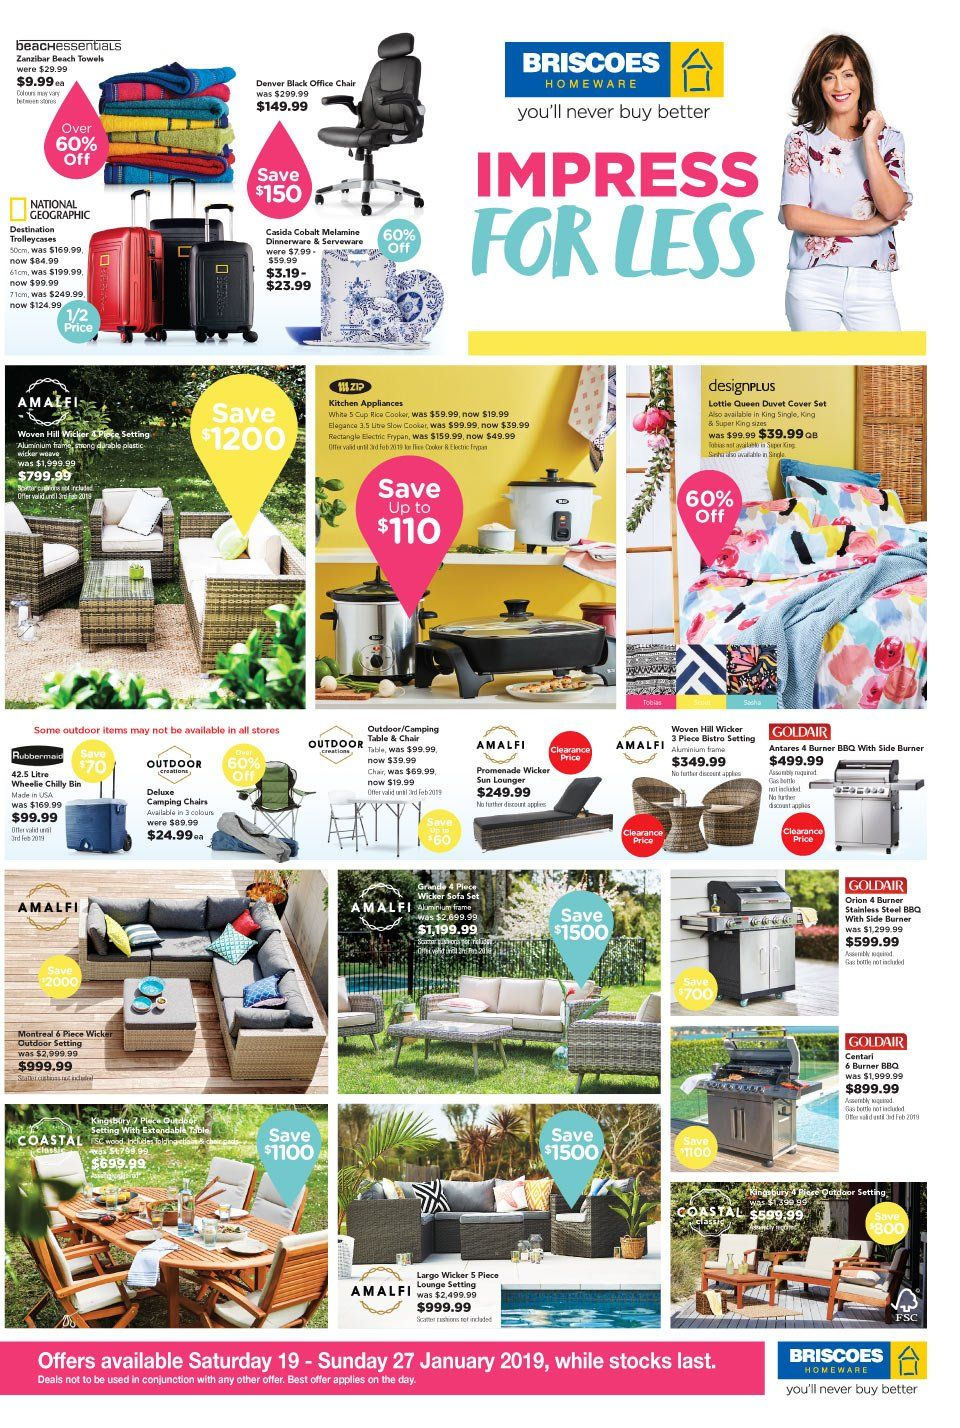 Briscoes mailer - 19.01.2019 - 27.01.2019 - Sales products - table, chair, sofa, dinnerware set, cup, serveware, frypan, duvet, quilt cover set, slow cooker, gas grill, apples. Page 1.